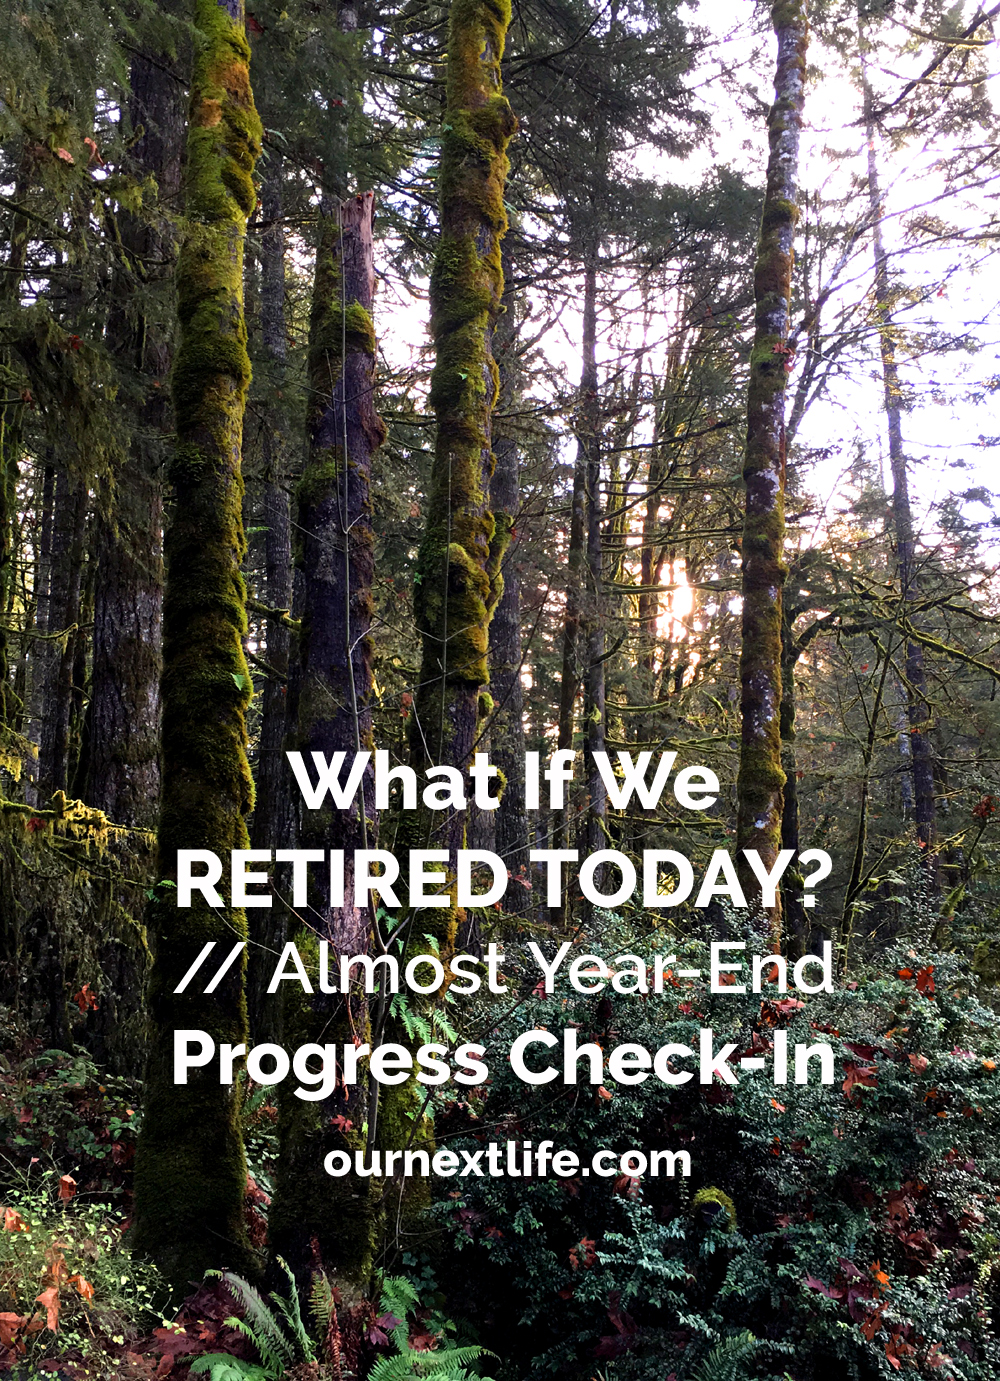 OurNextLife.com // What If We Retired Today? Almost Year-End Progress Check-In